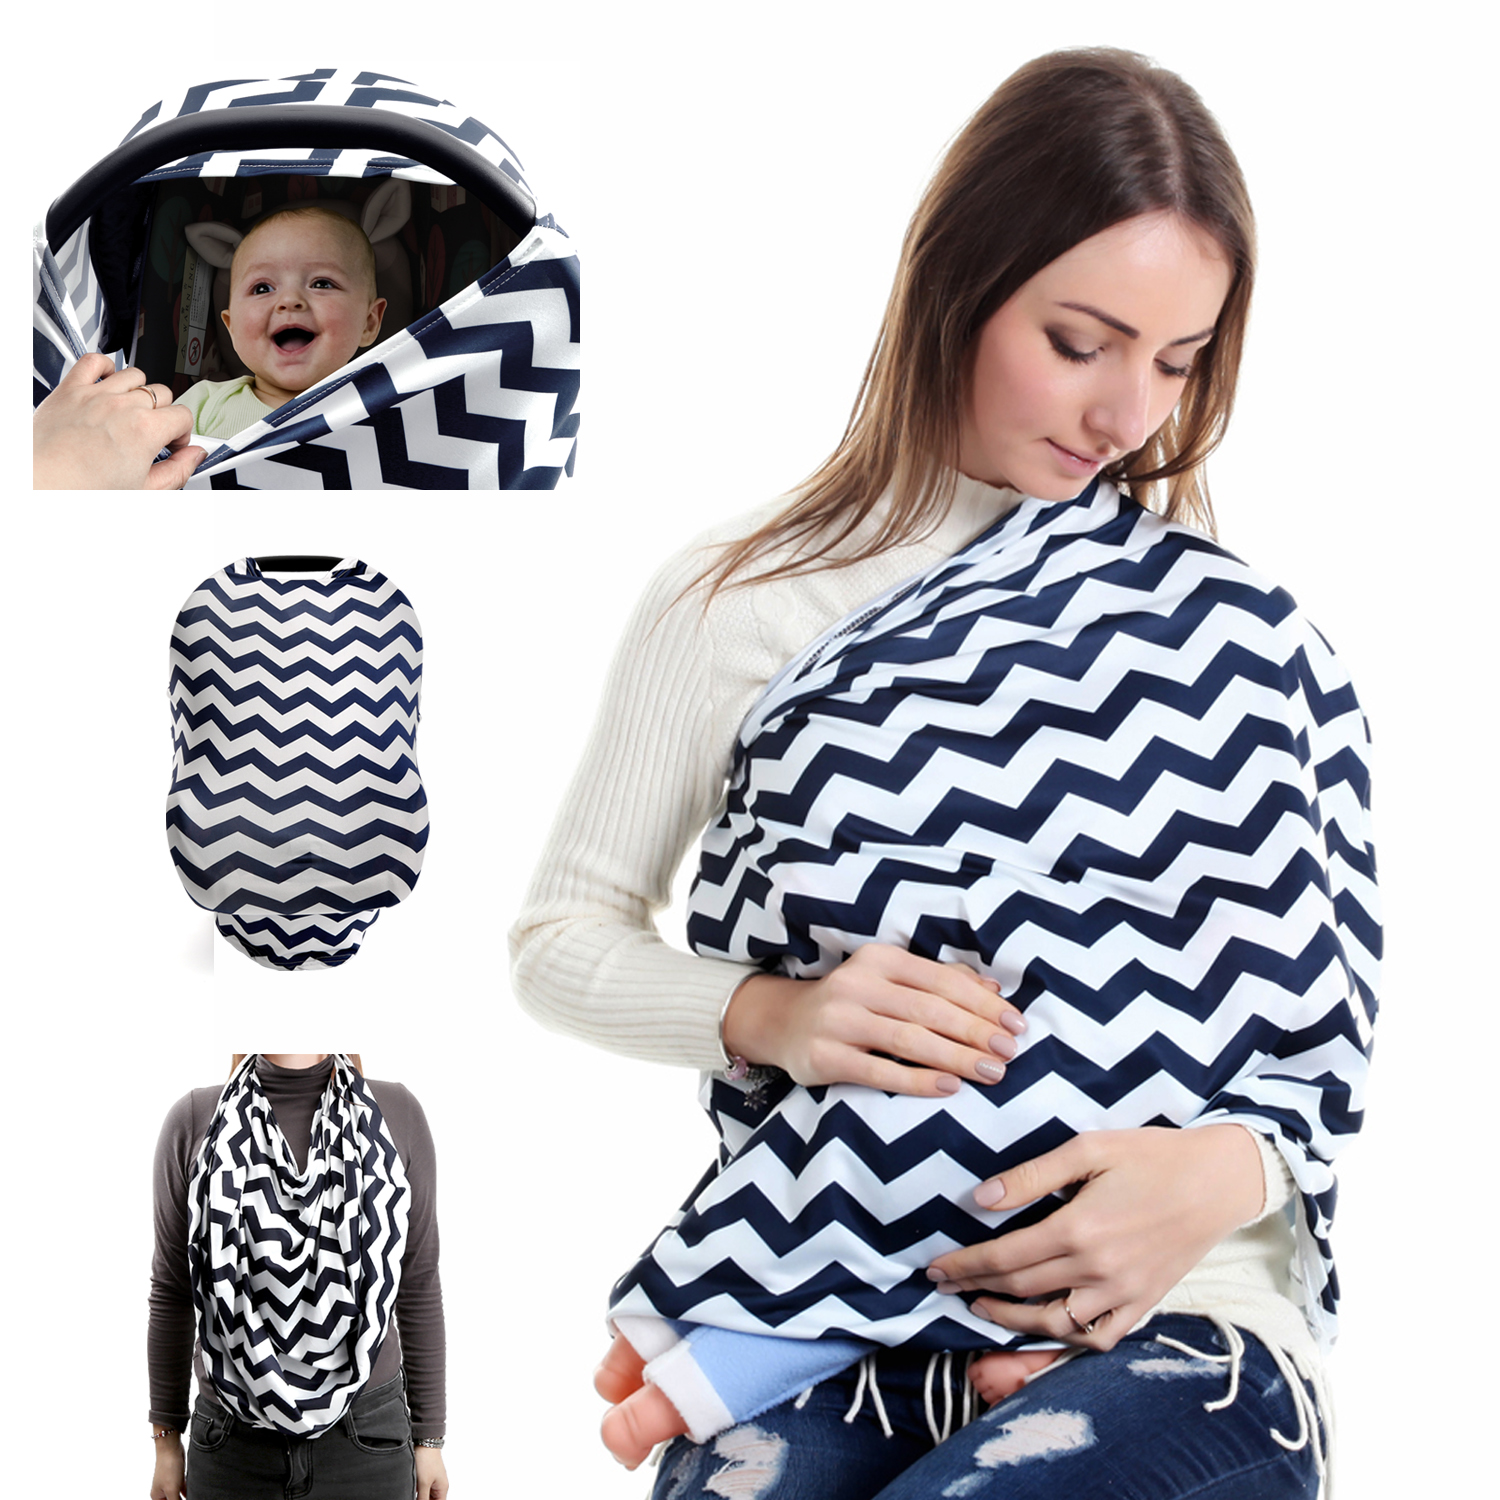 Children Hub Nursing Cover Baby Breastfeeding Scarf Car Seat Canopy Navy And White